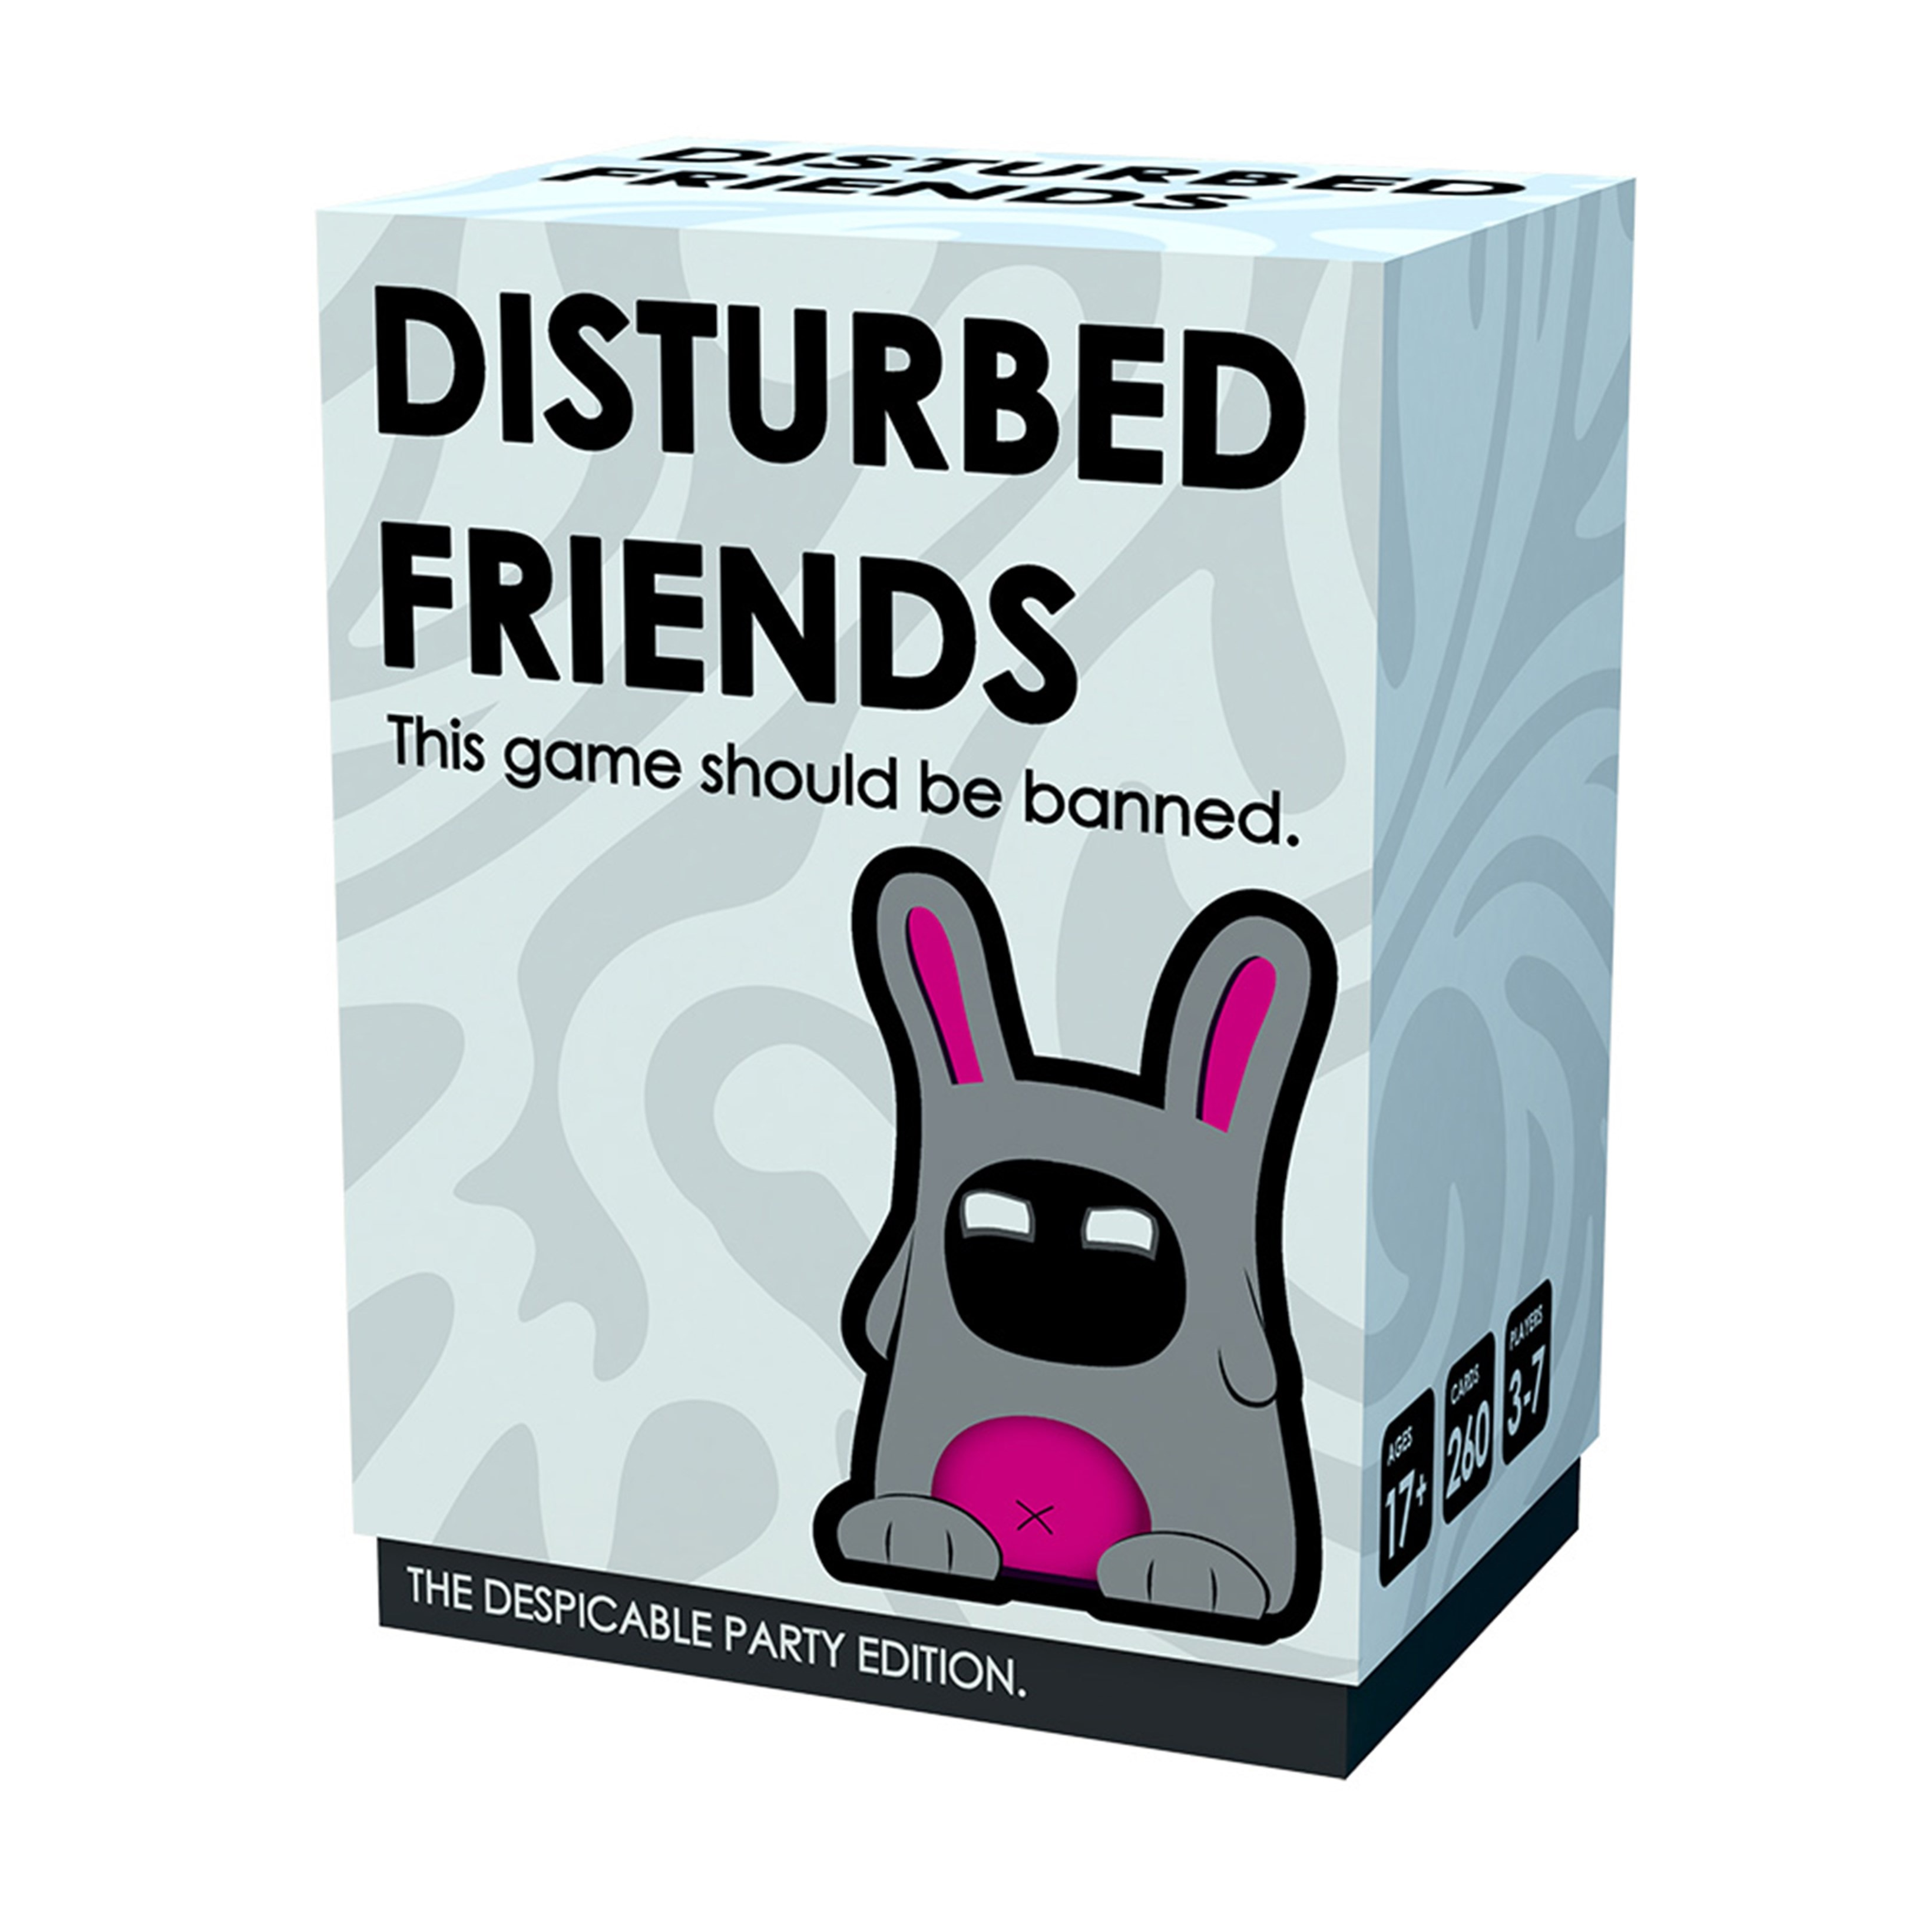 Disturbed Friends: The Despicable Party Edition - 1